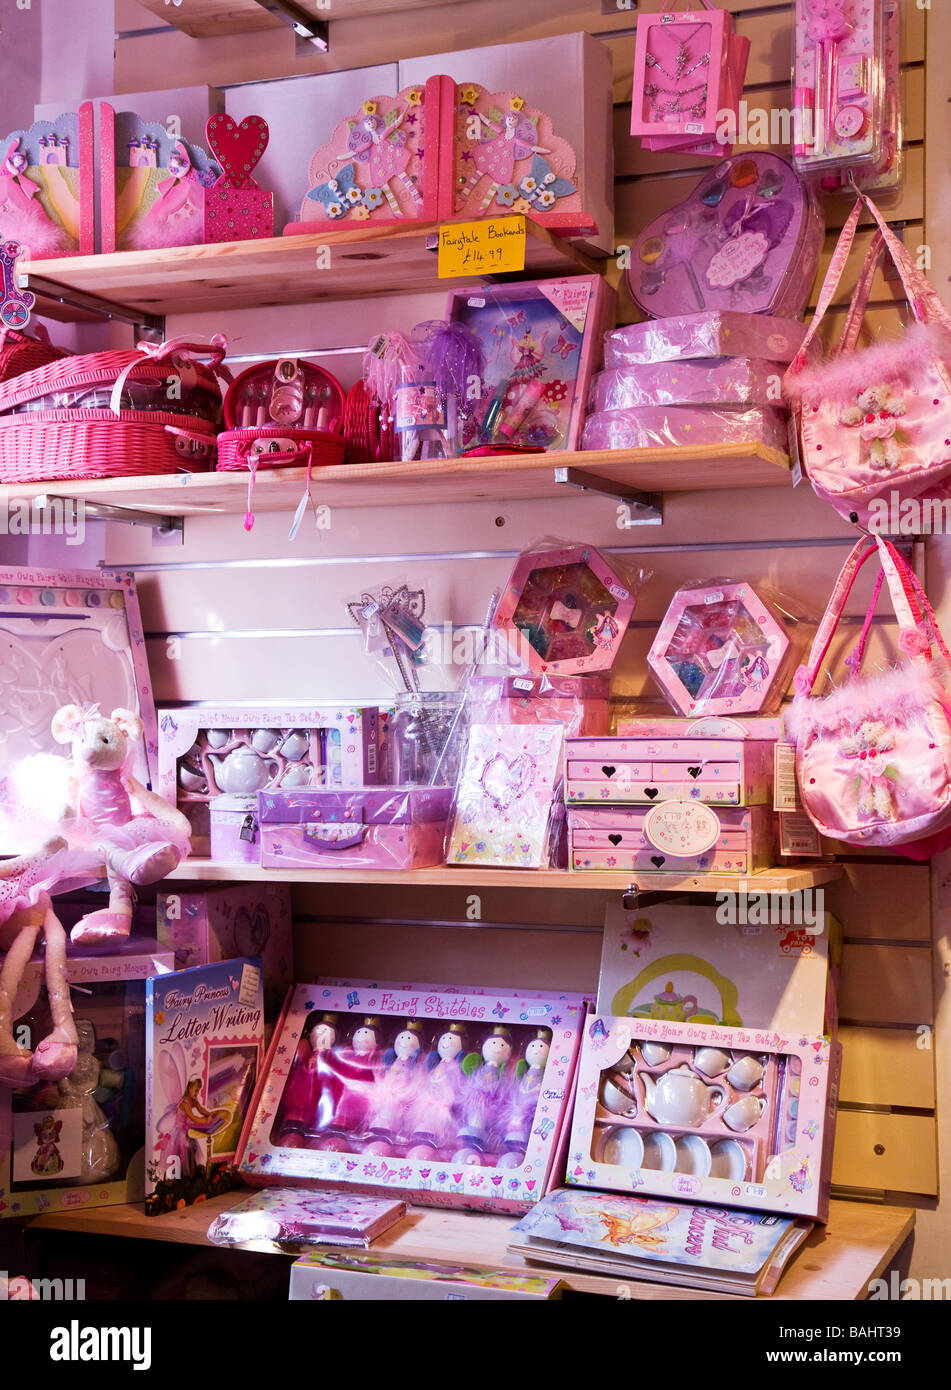 Shelves Of Pink Little Girls Fairy Lucy Locket Toys Inside A